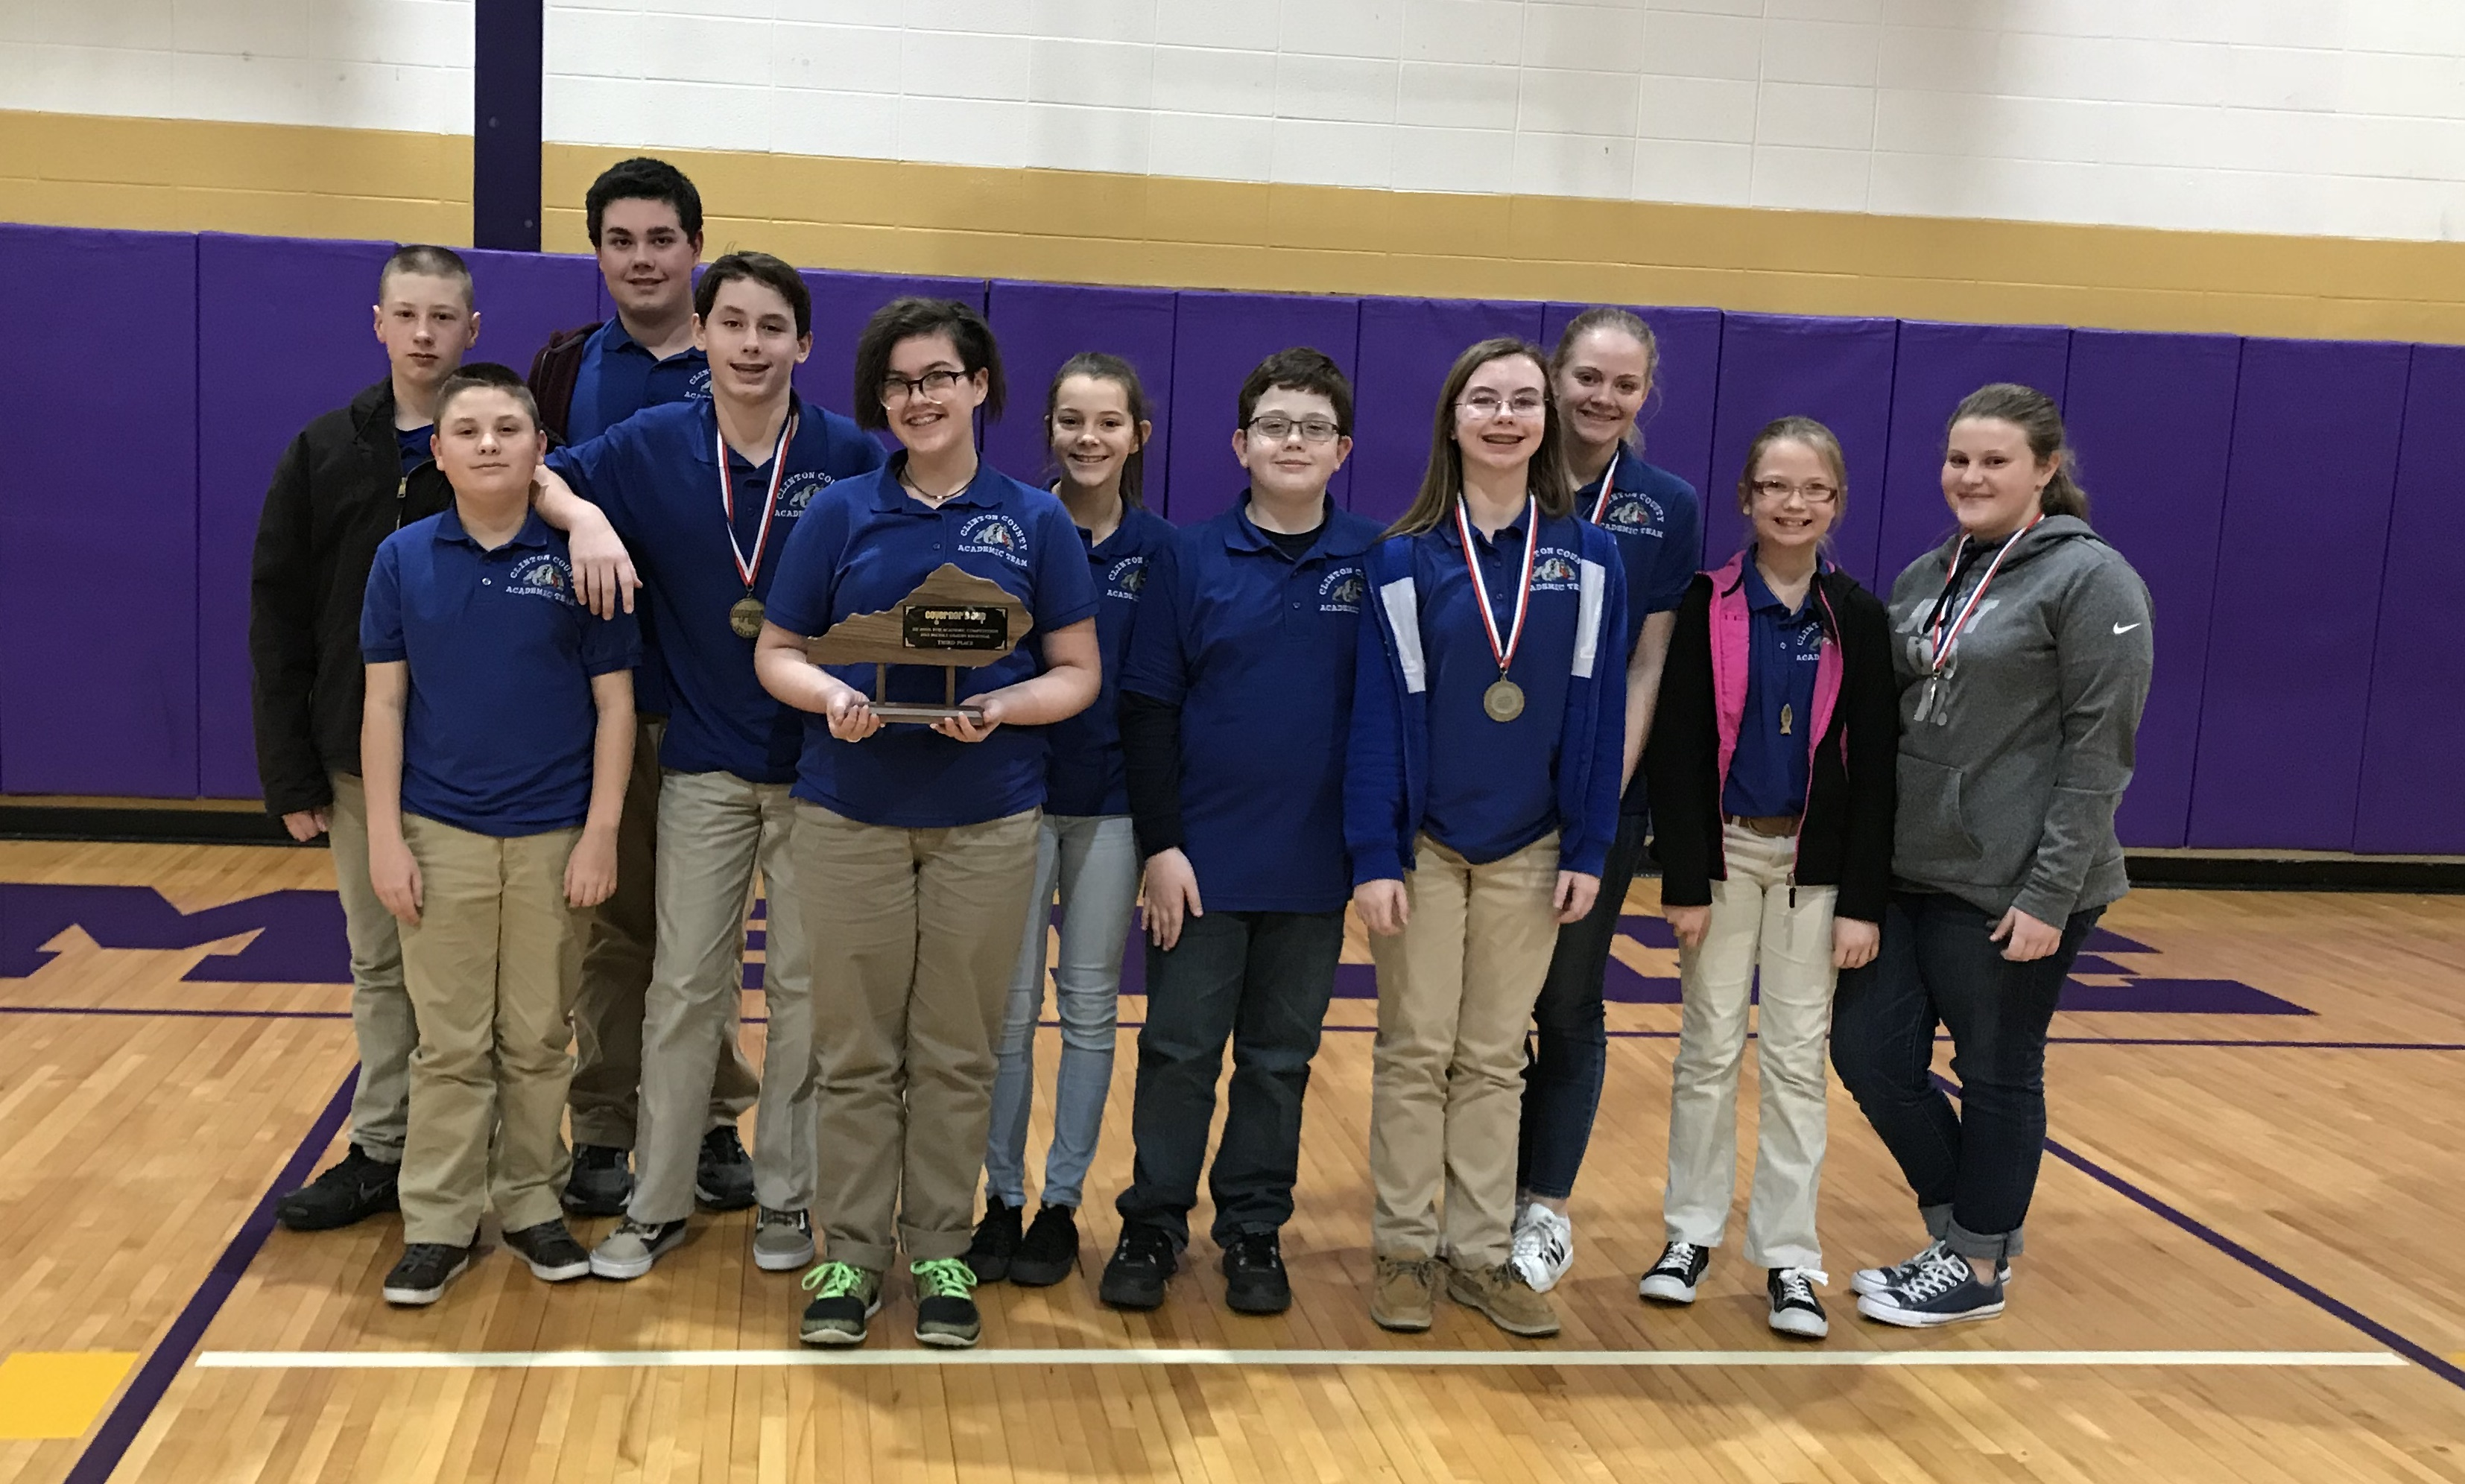 Clinton County Middle School Academic Team is 3rd runner-up at Regional Governor's Cup.